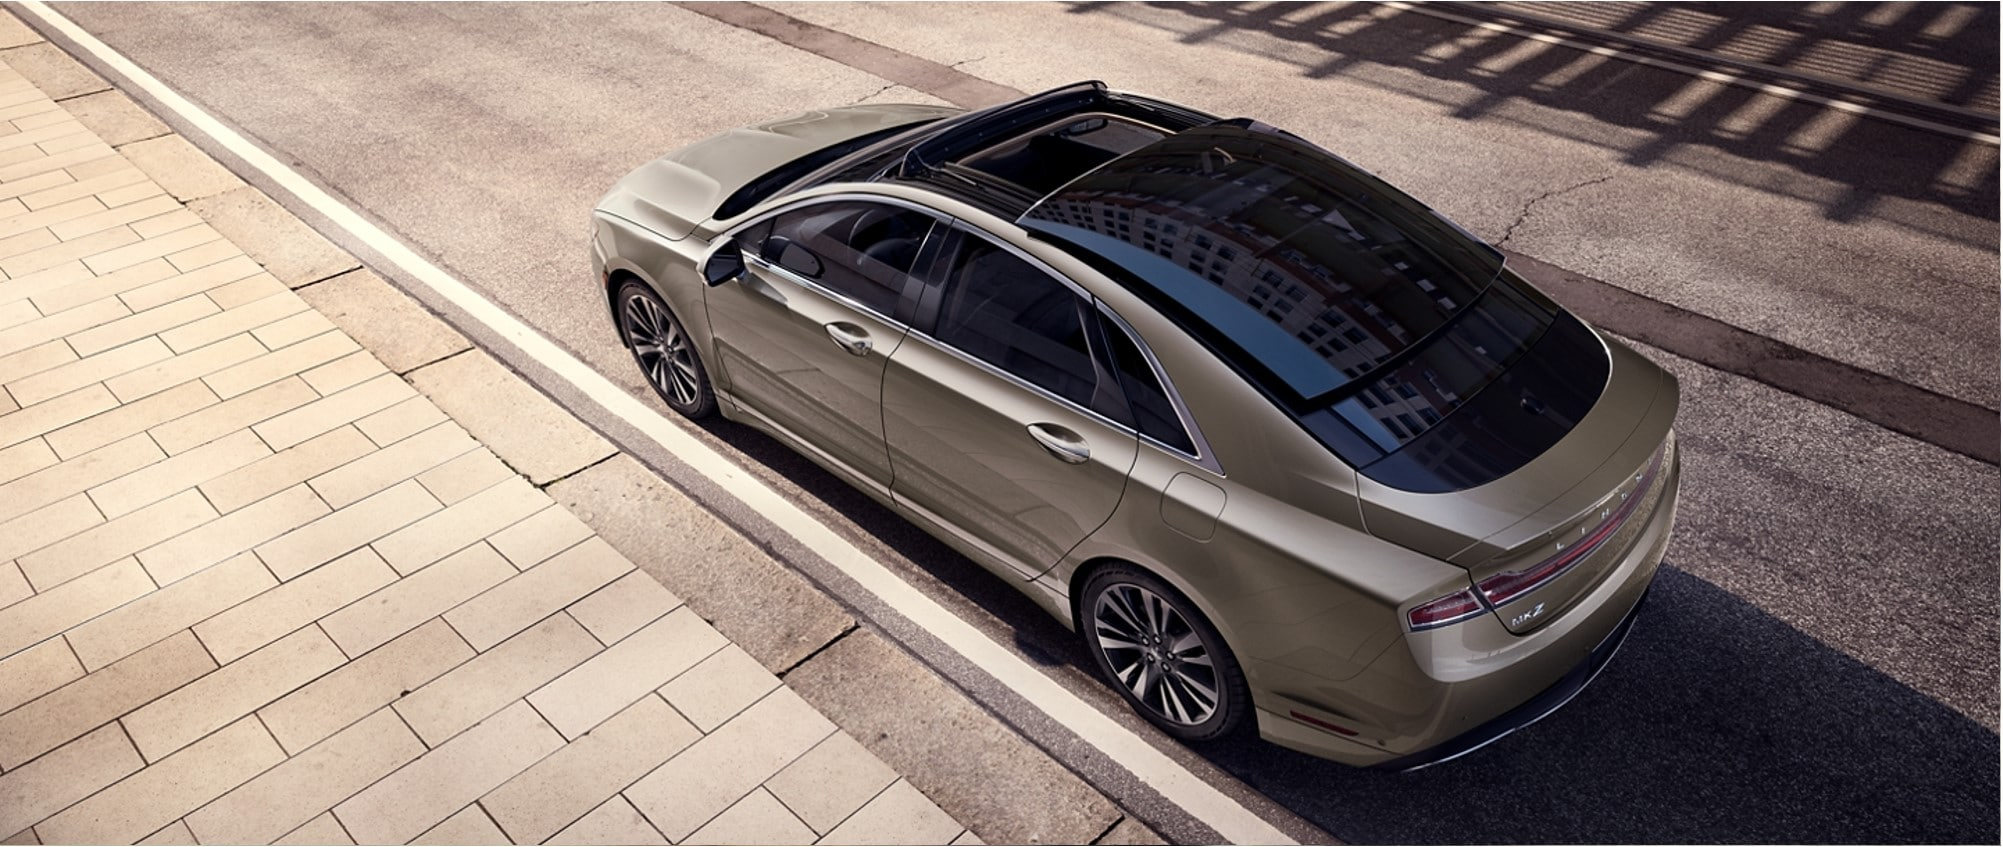 the panoramic glass roof of a new 2020 Lincoln MKZ